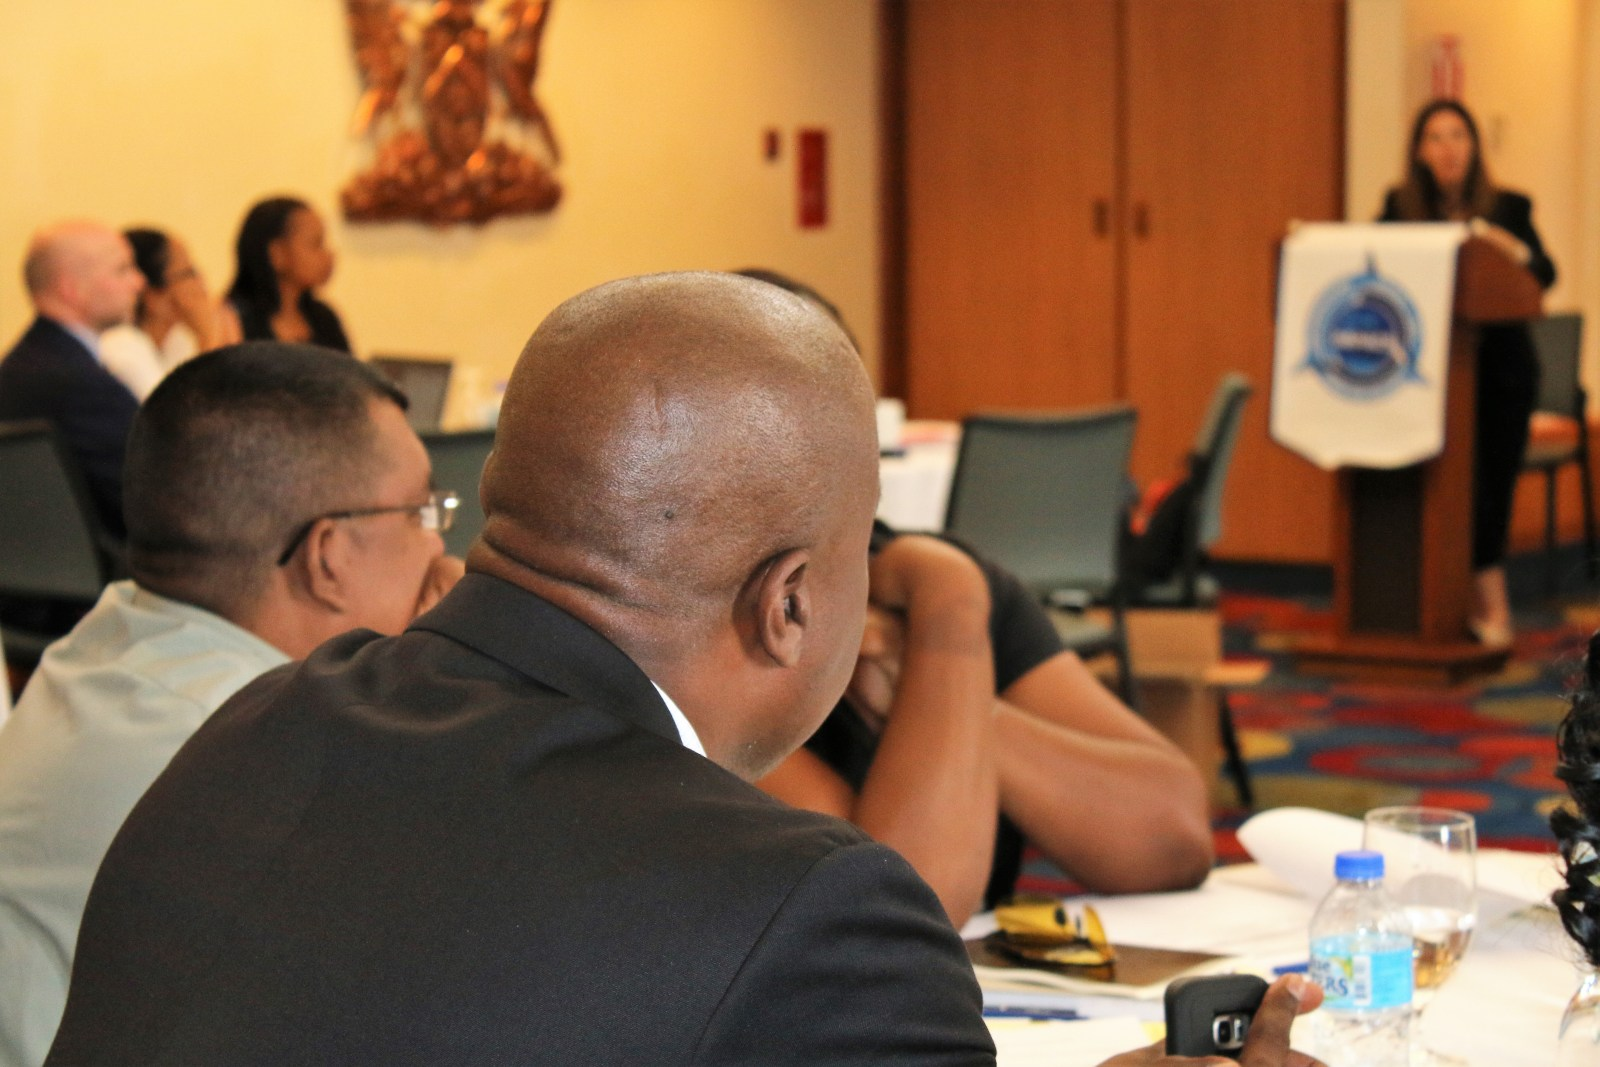 Participants at arms control workshop in the Caribbean